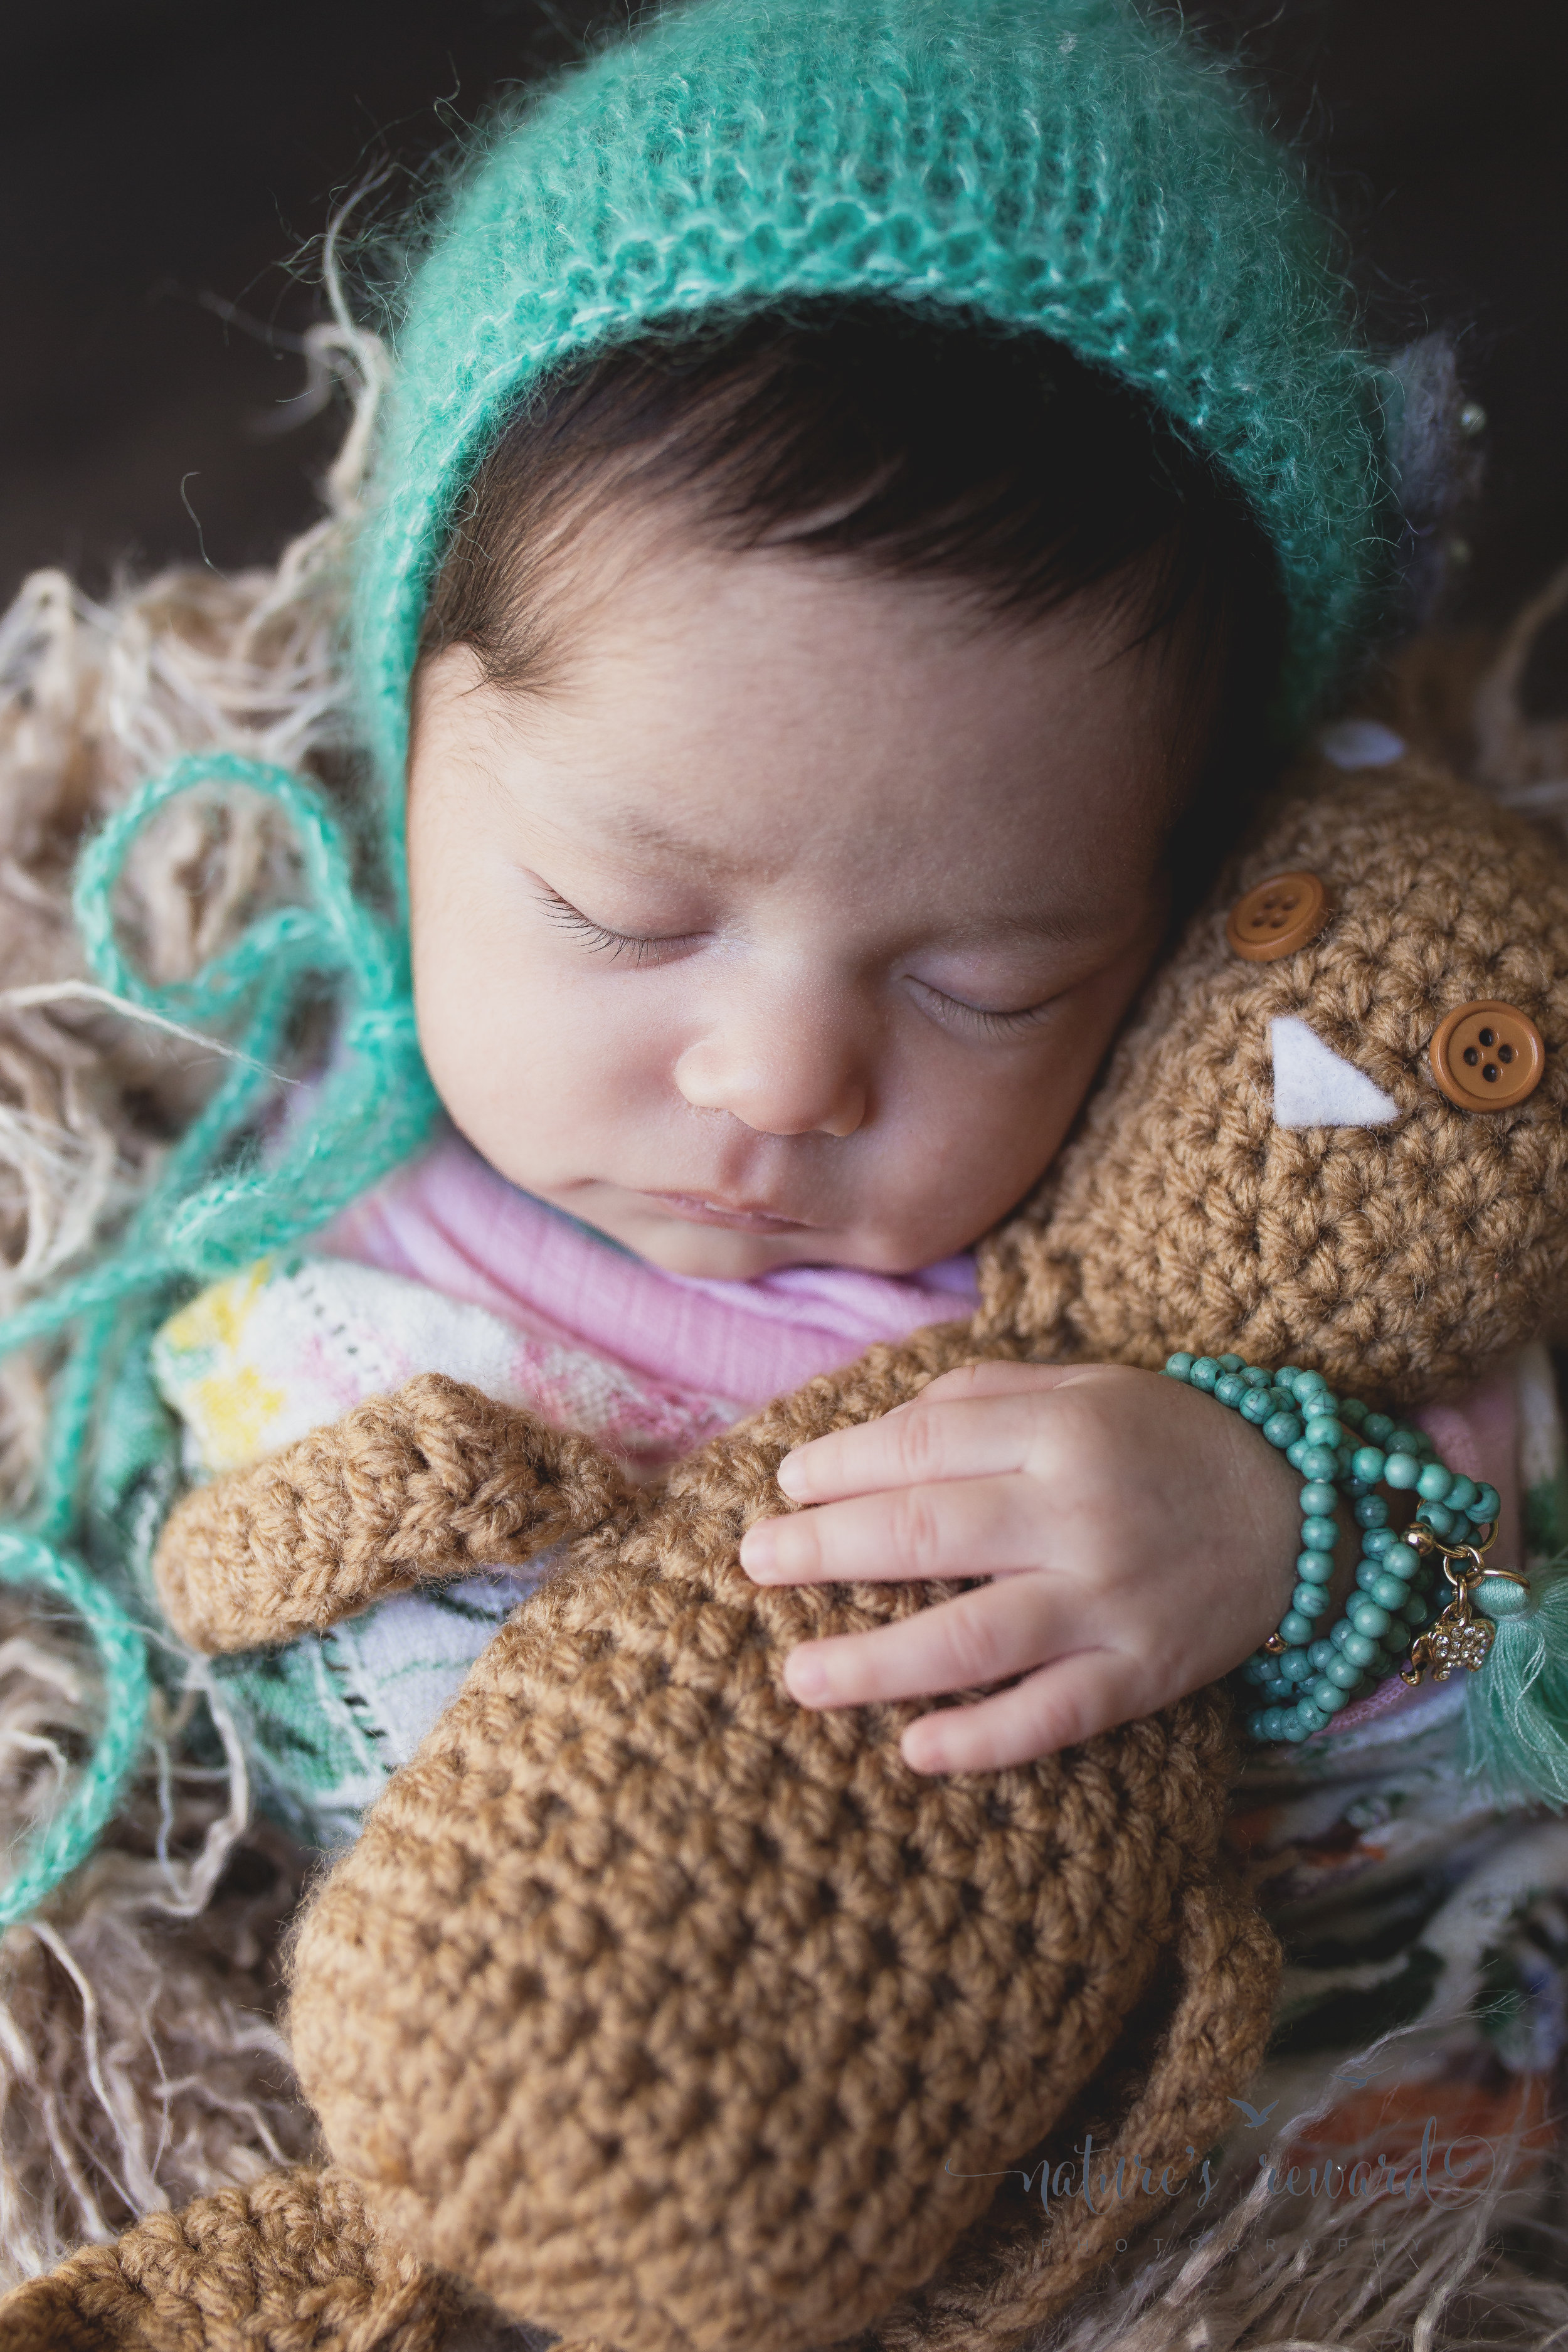 The teddy and her bonnet. And then there was magic. Image by Nature's Reward Photography